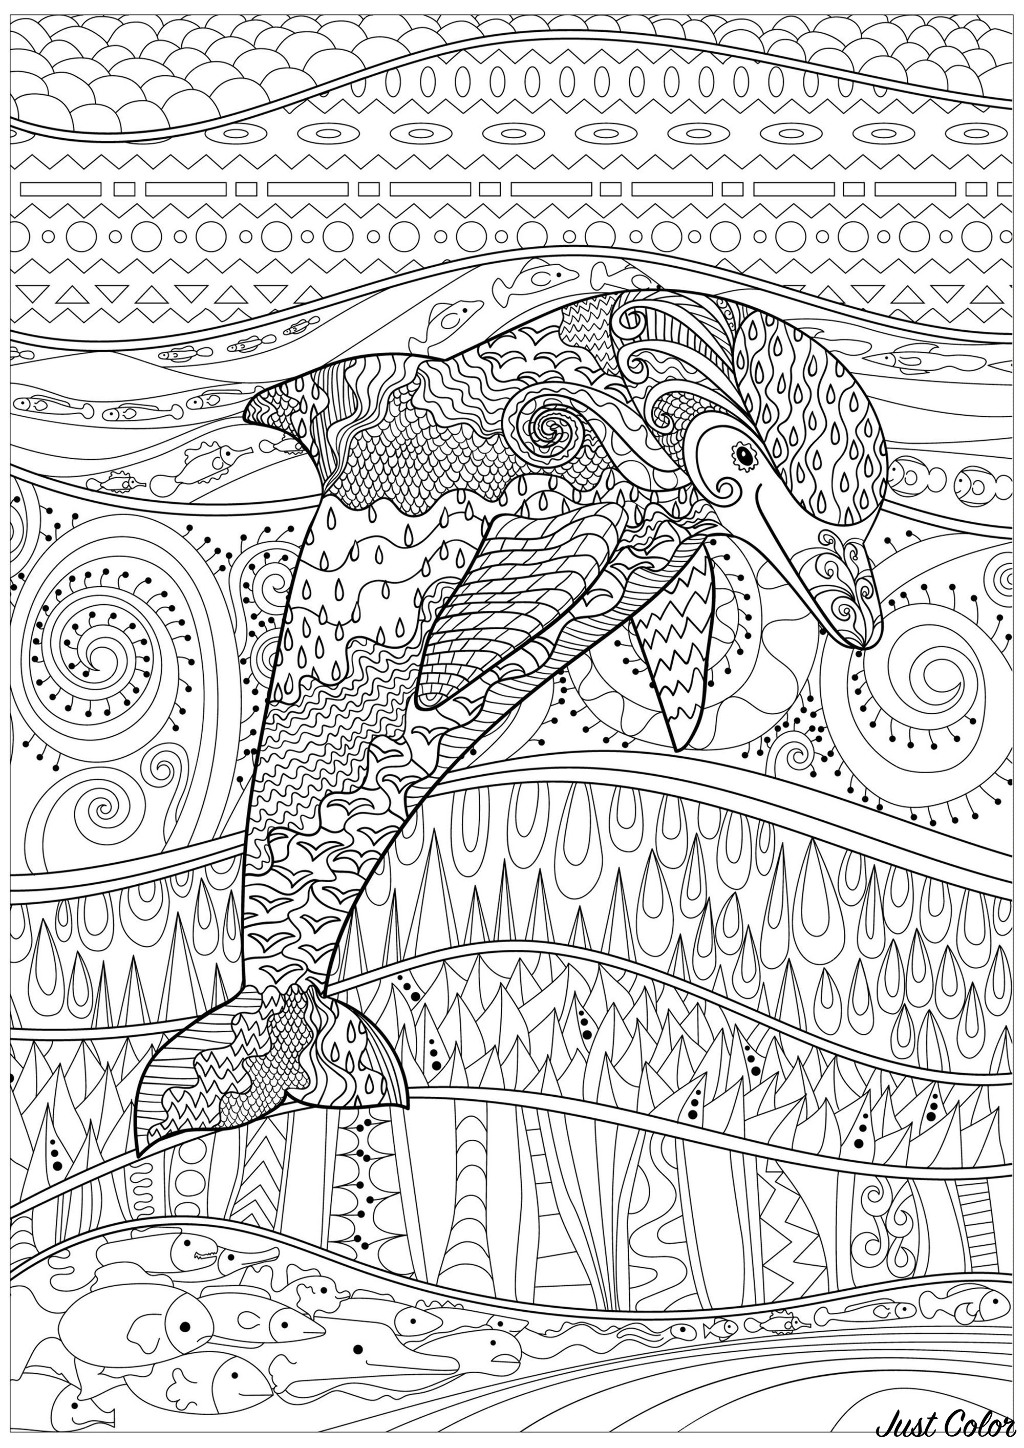 Dolphin in a calm sea, with fishes and lovely, abstract and complex patterns, inside and outside his body